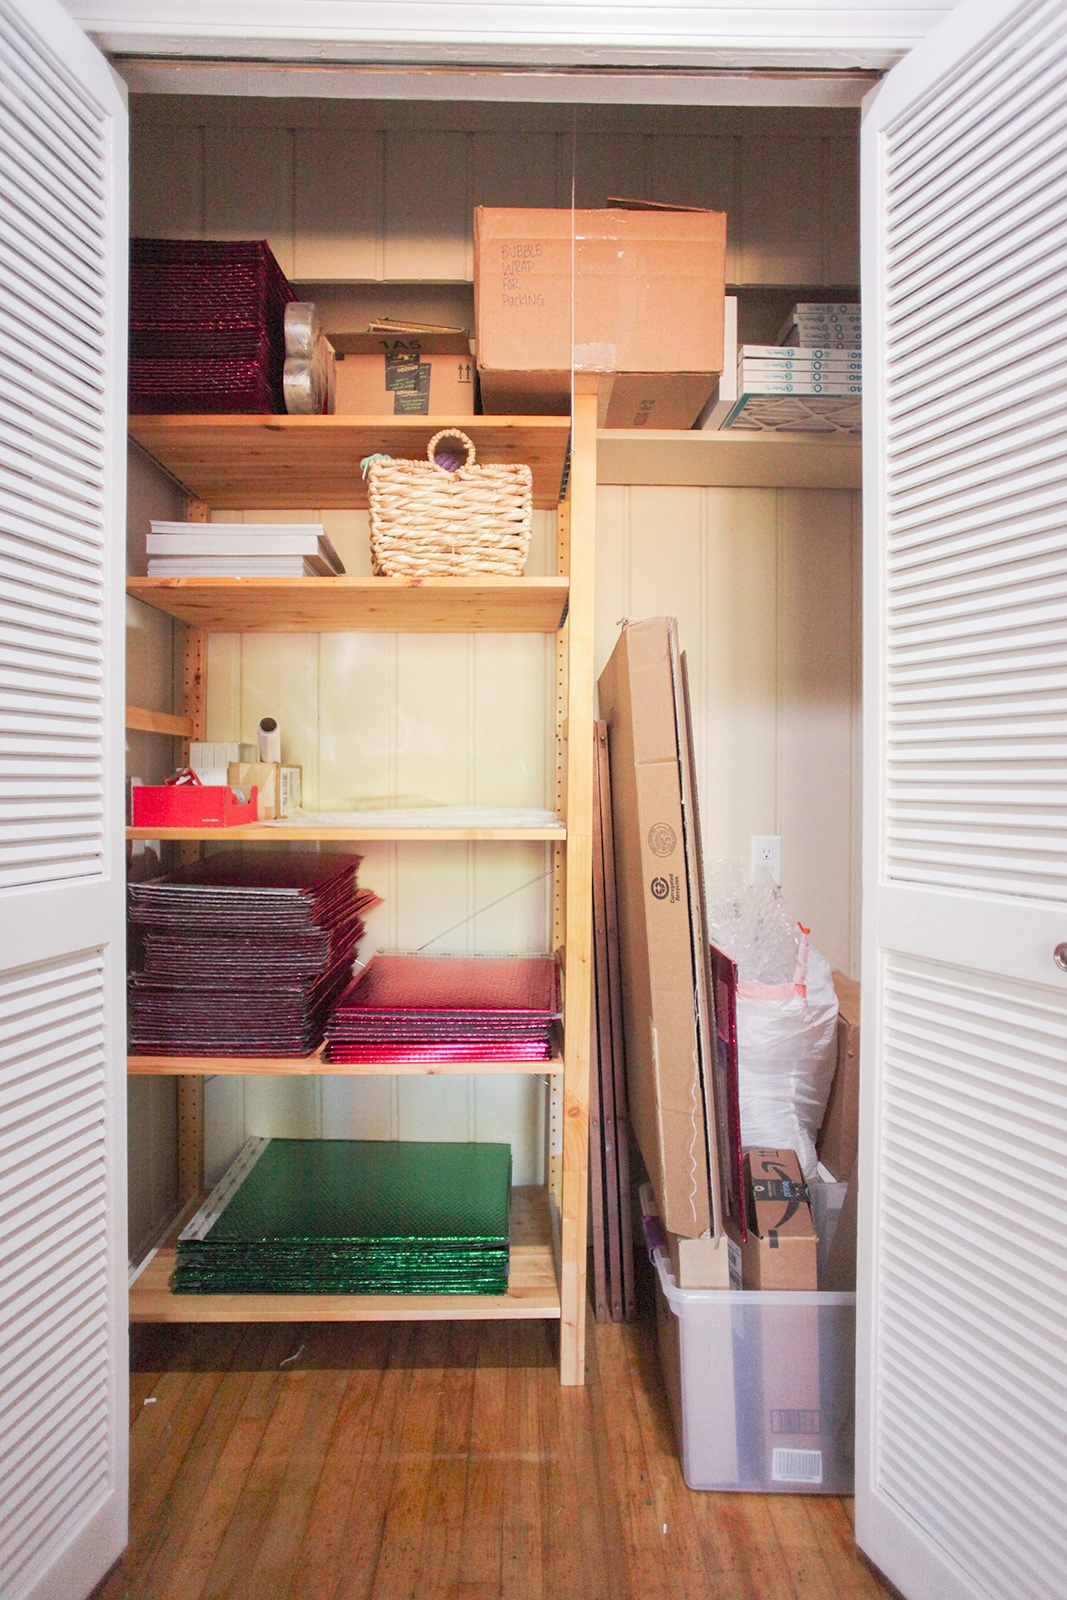 Can you believe it? The shelf is in the closet. So much better.